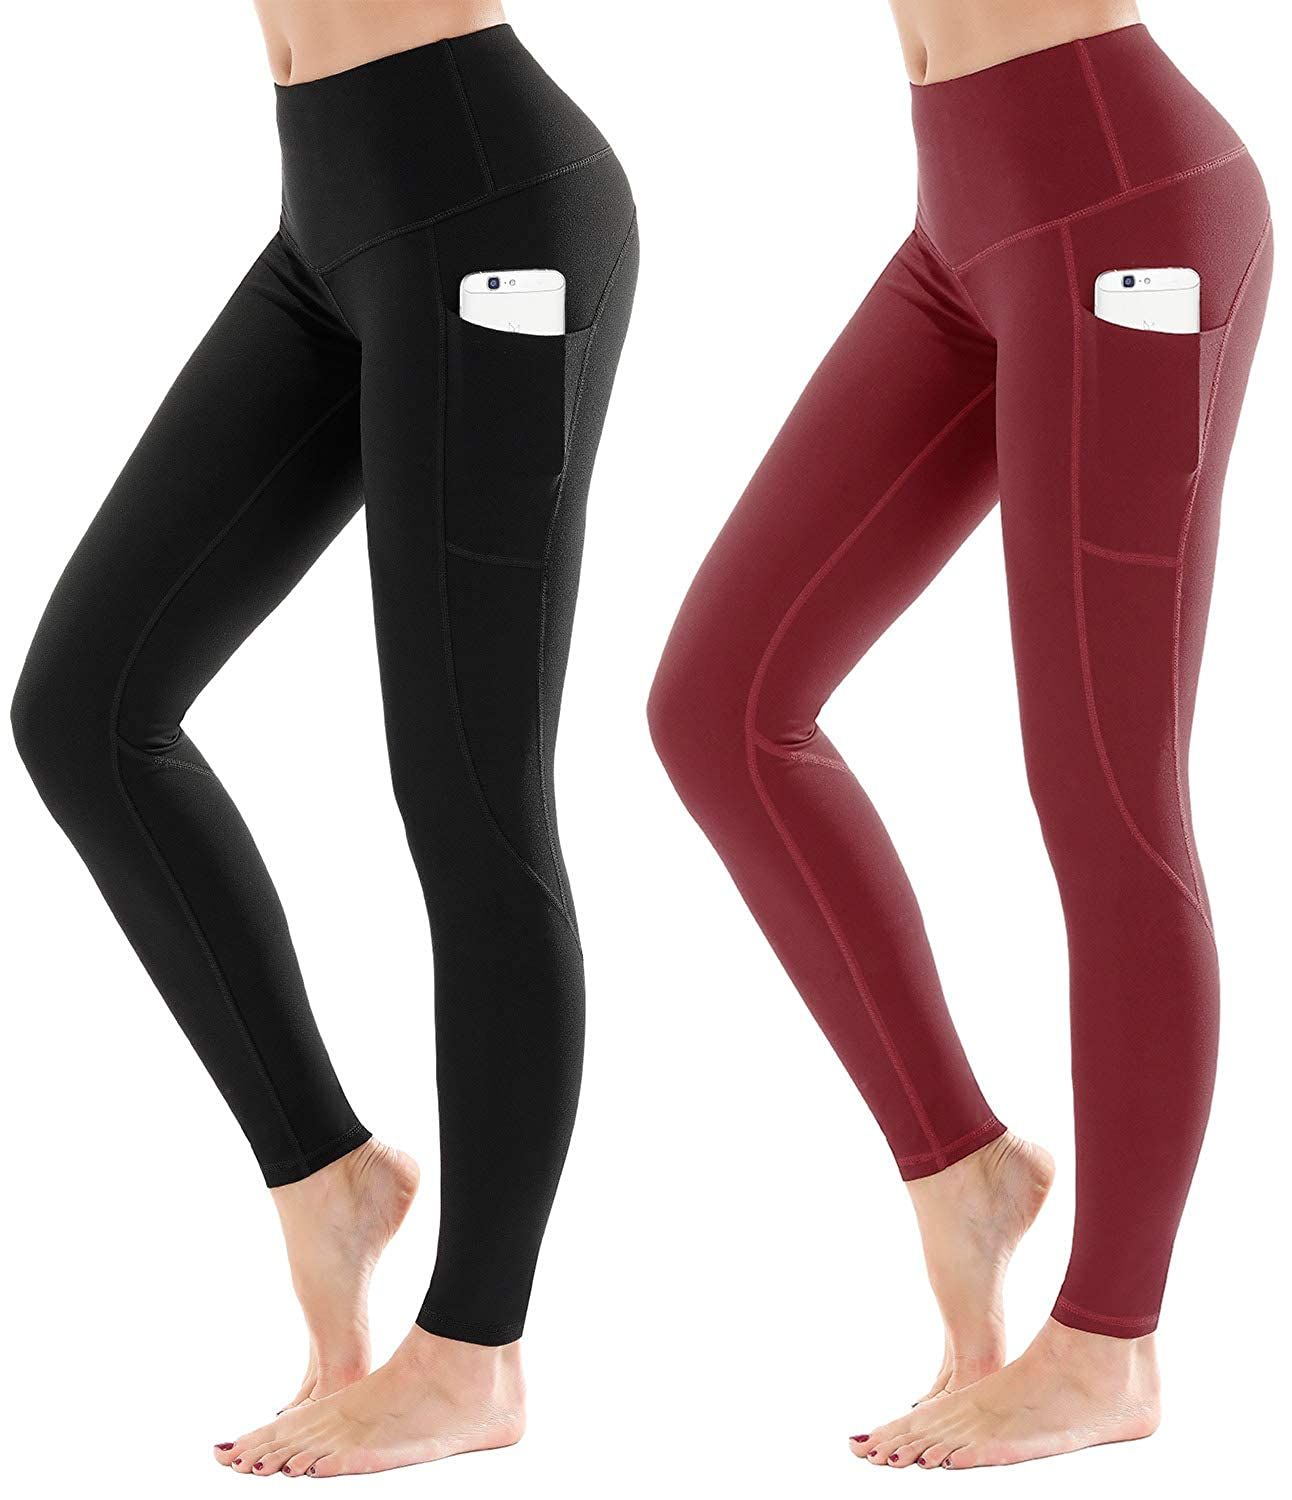 9853 Black + Wine Red LifeSky High Waist Yoga Pants Workout Leggings for Women with Pockets Tummy Control Soft Pants